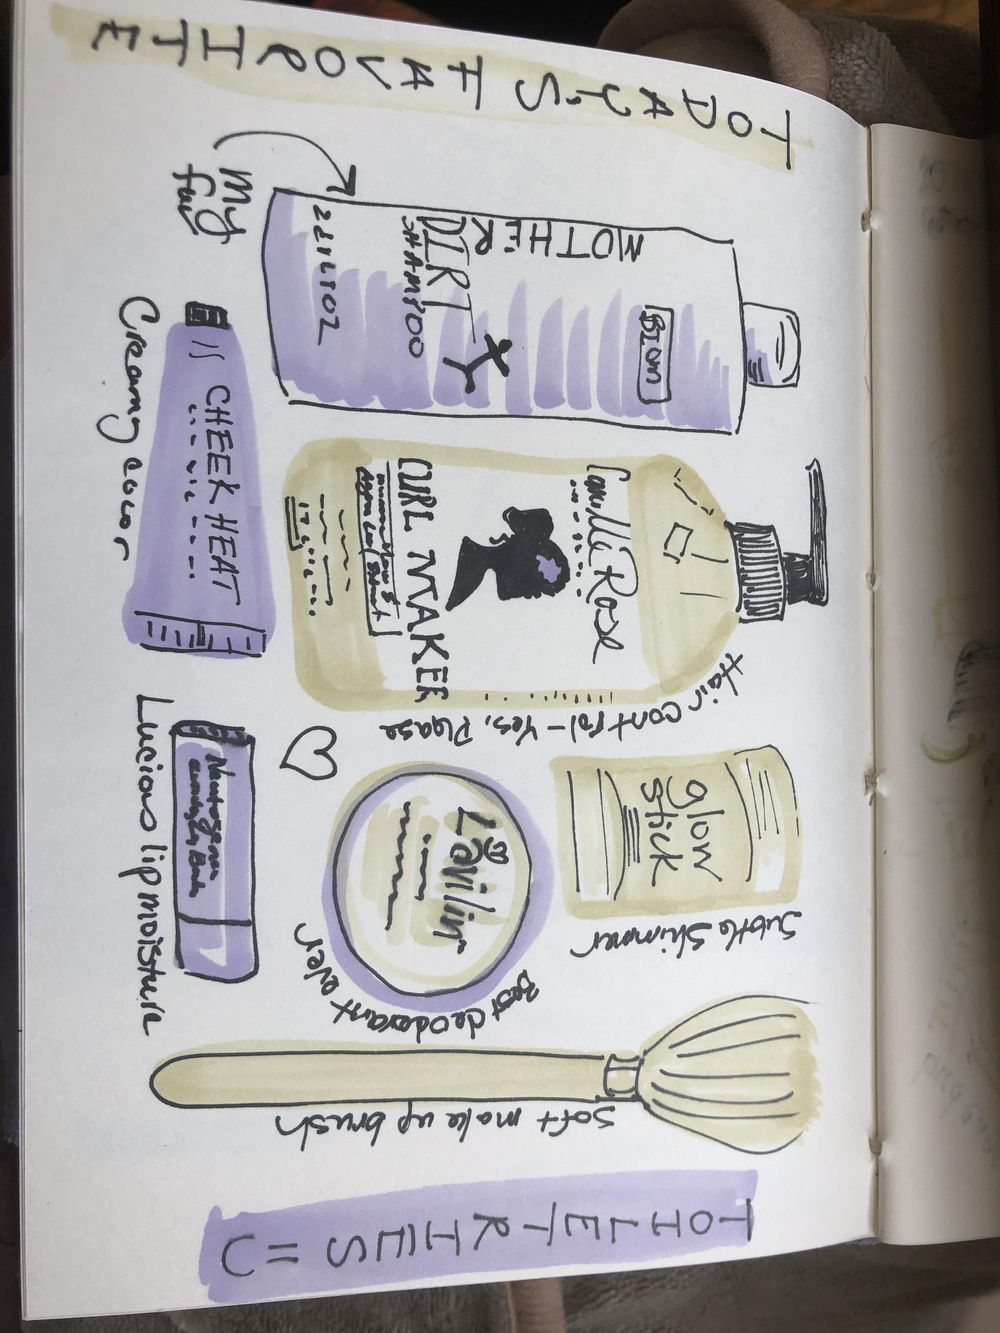 14 days of illustrated journal prompts - image 11 - student project